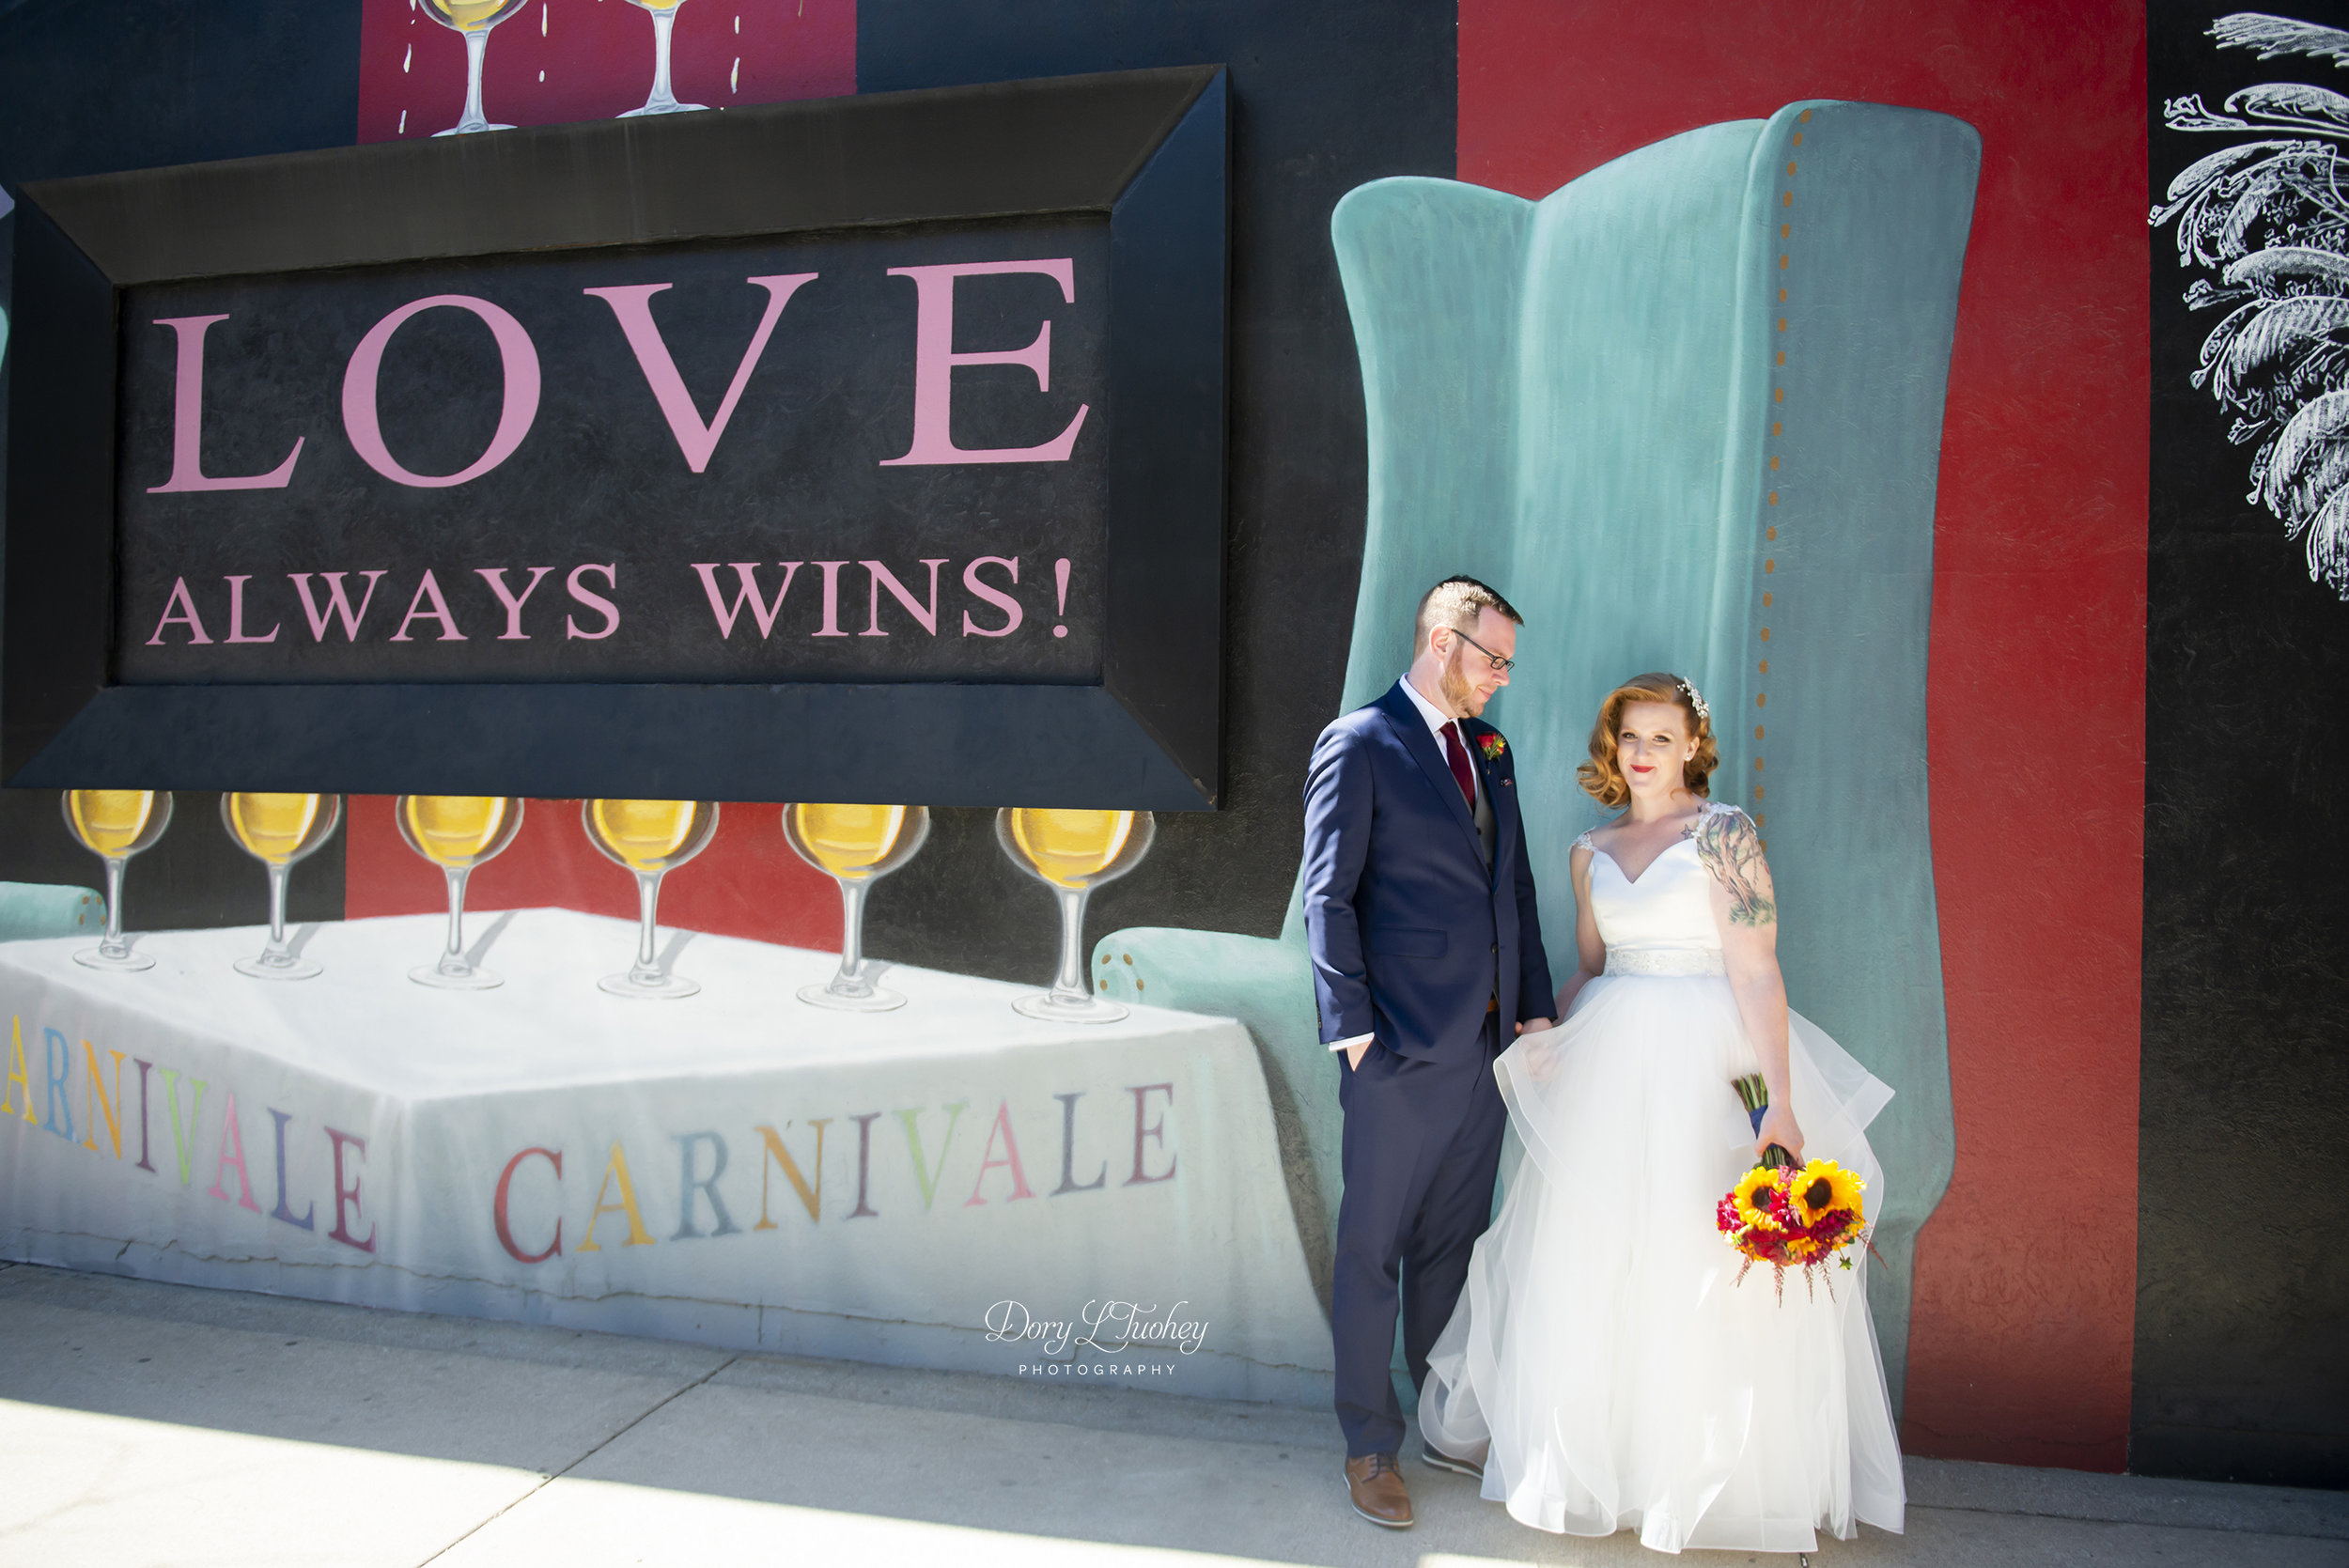 Carnivale_chicago_dory_wedding_vintage_bride_red_lips_paint_mural_groom_11.jpg